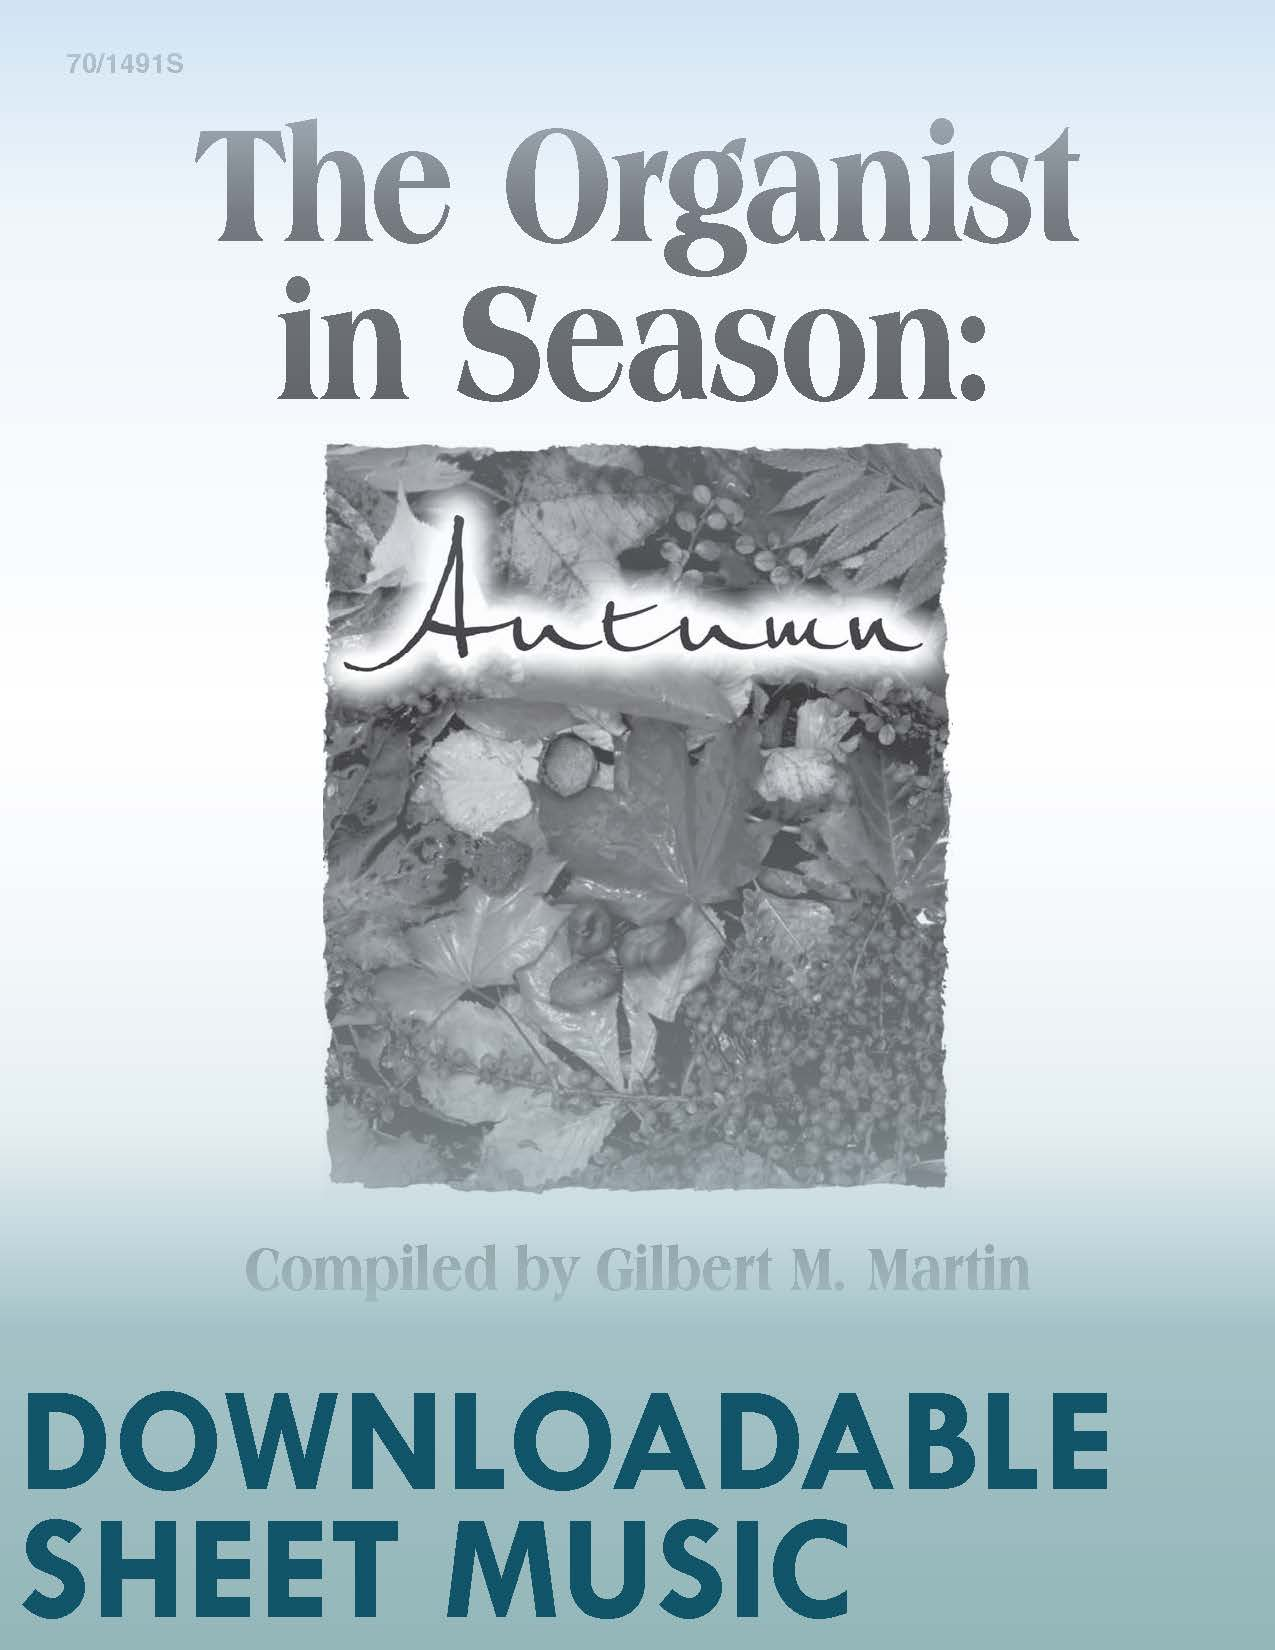 The Organist in Season: Autumn - Digital Download